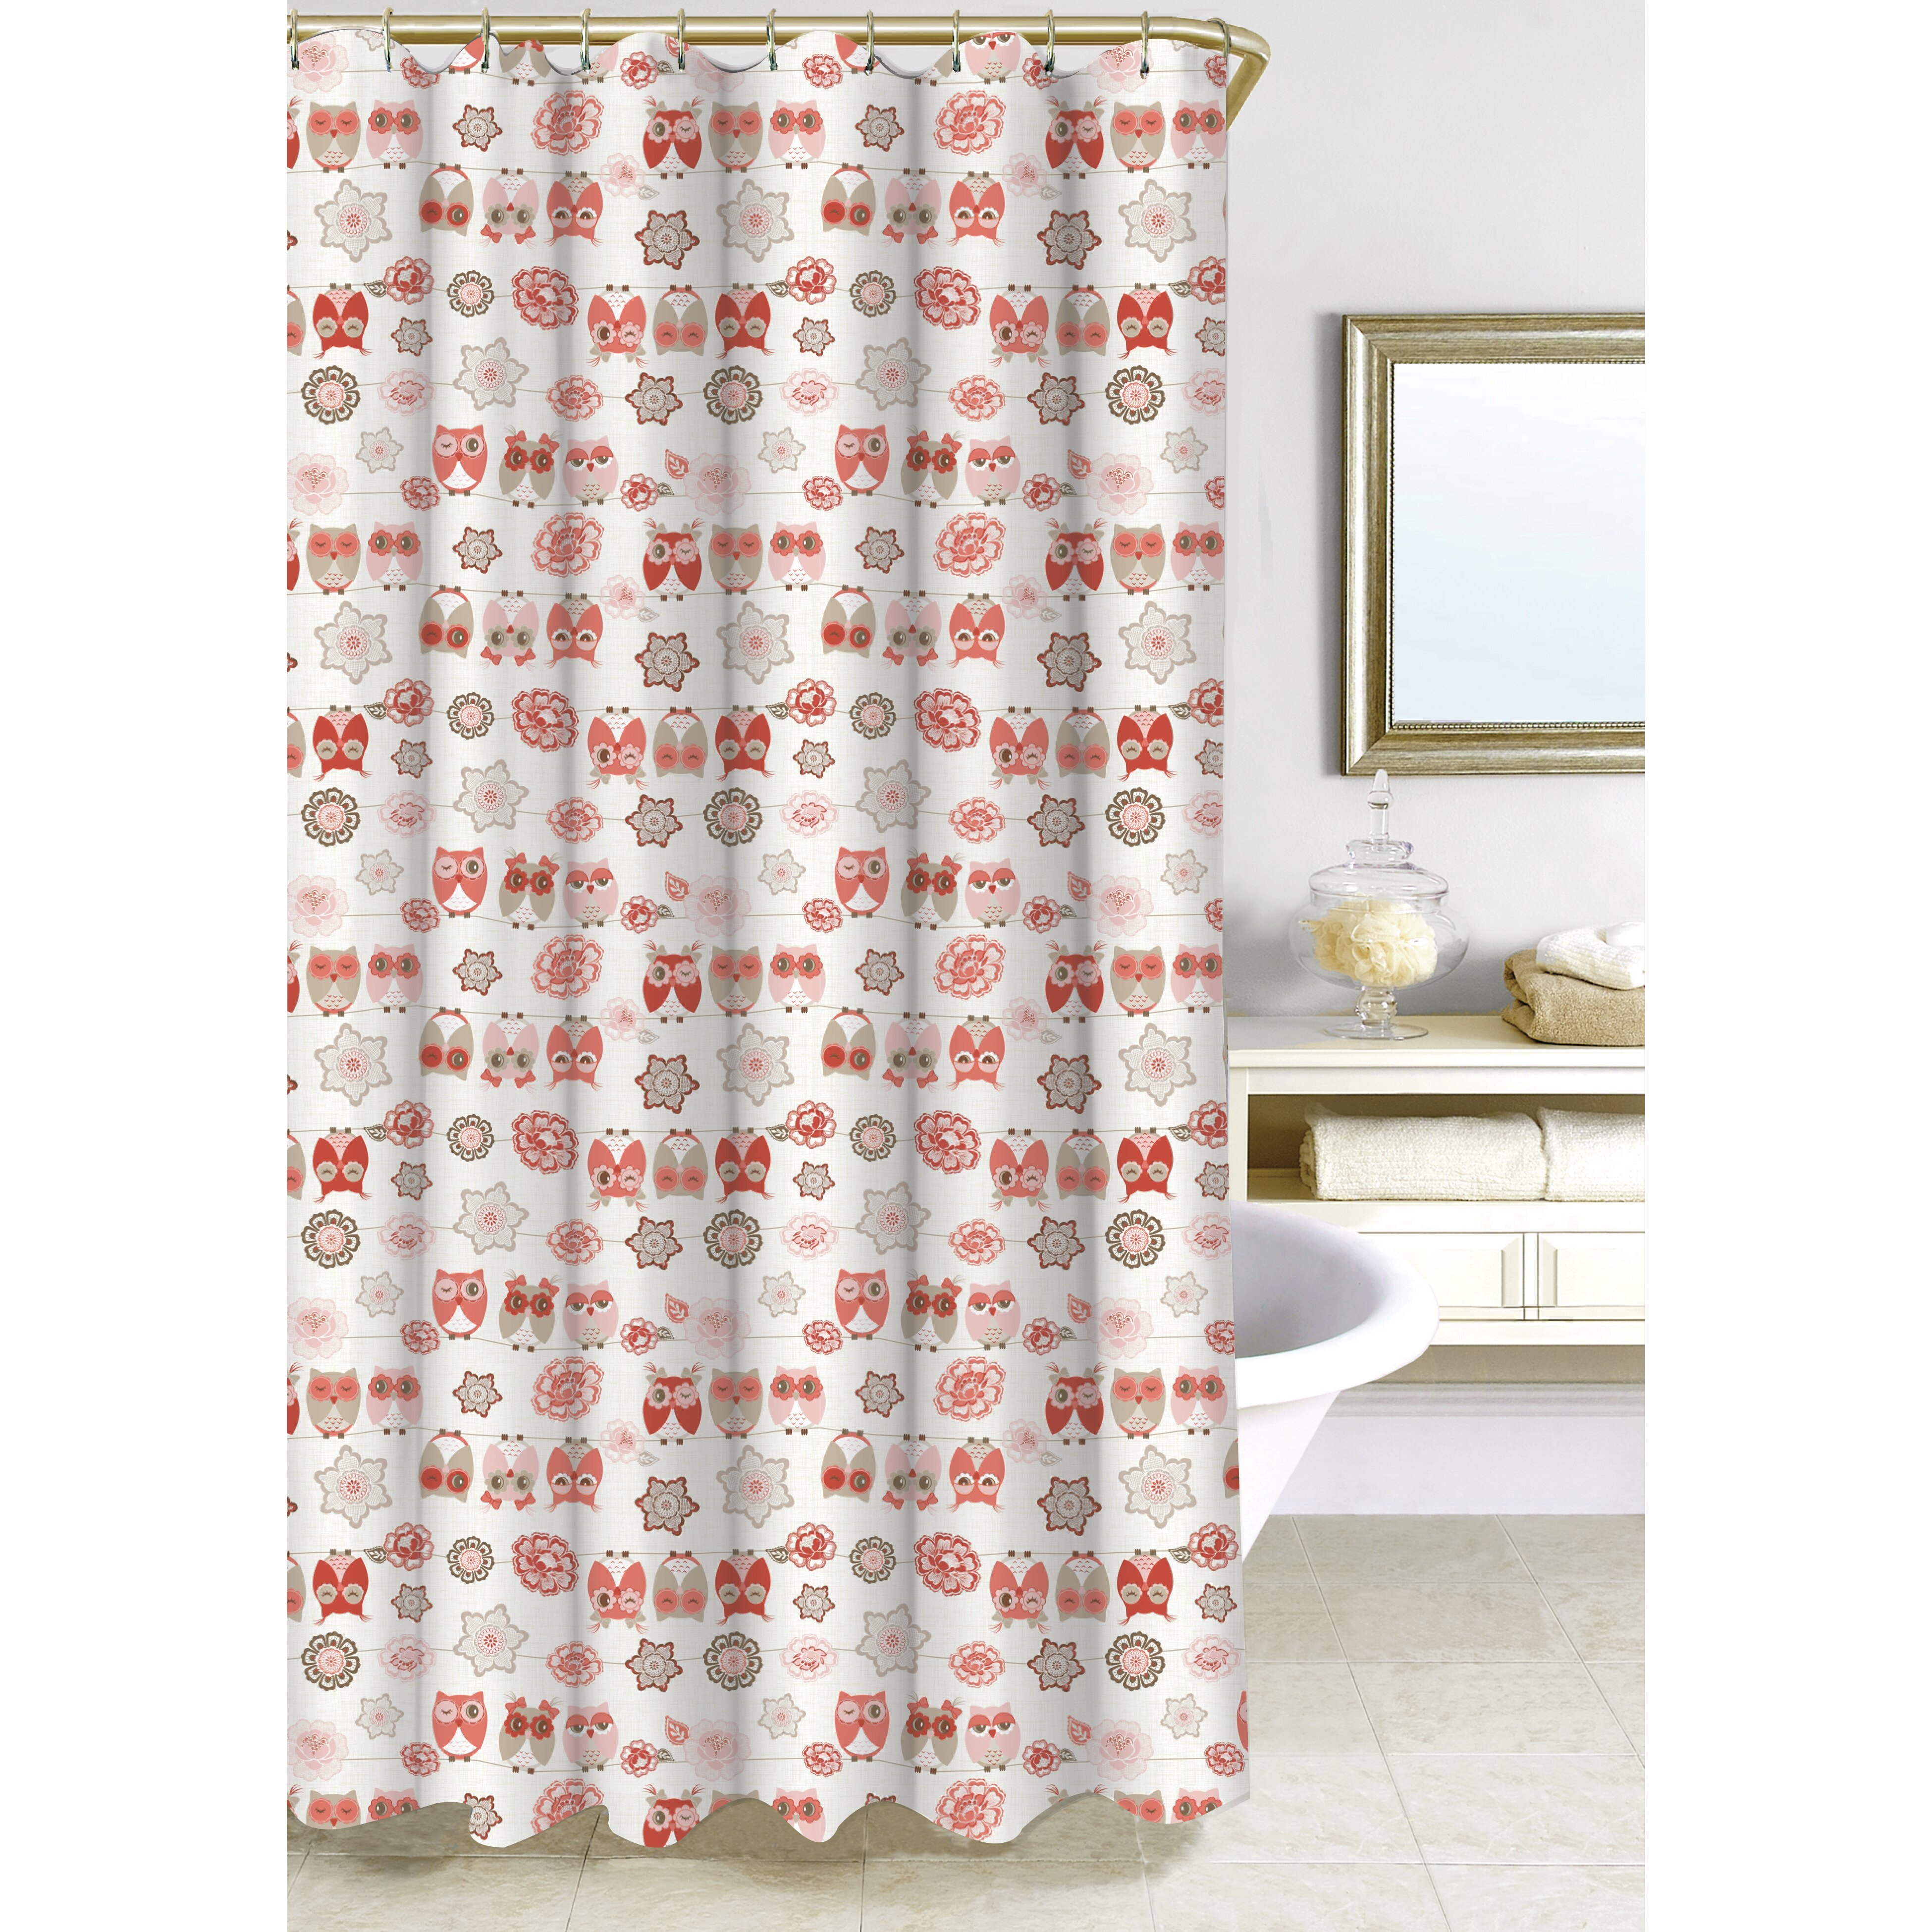 Homewear Linens Owl Ya Doin Shower Curtain Wayfair